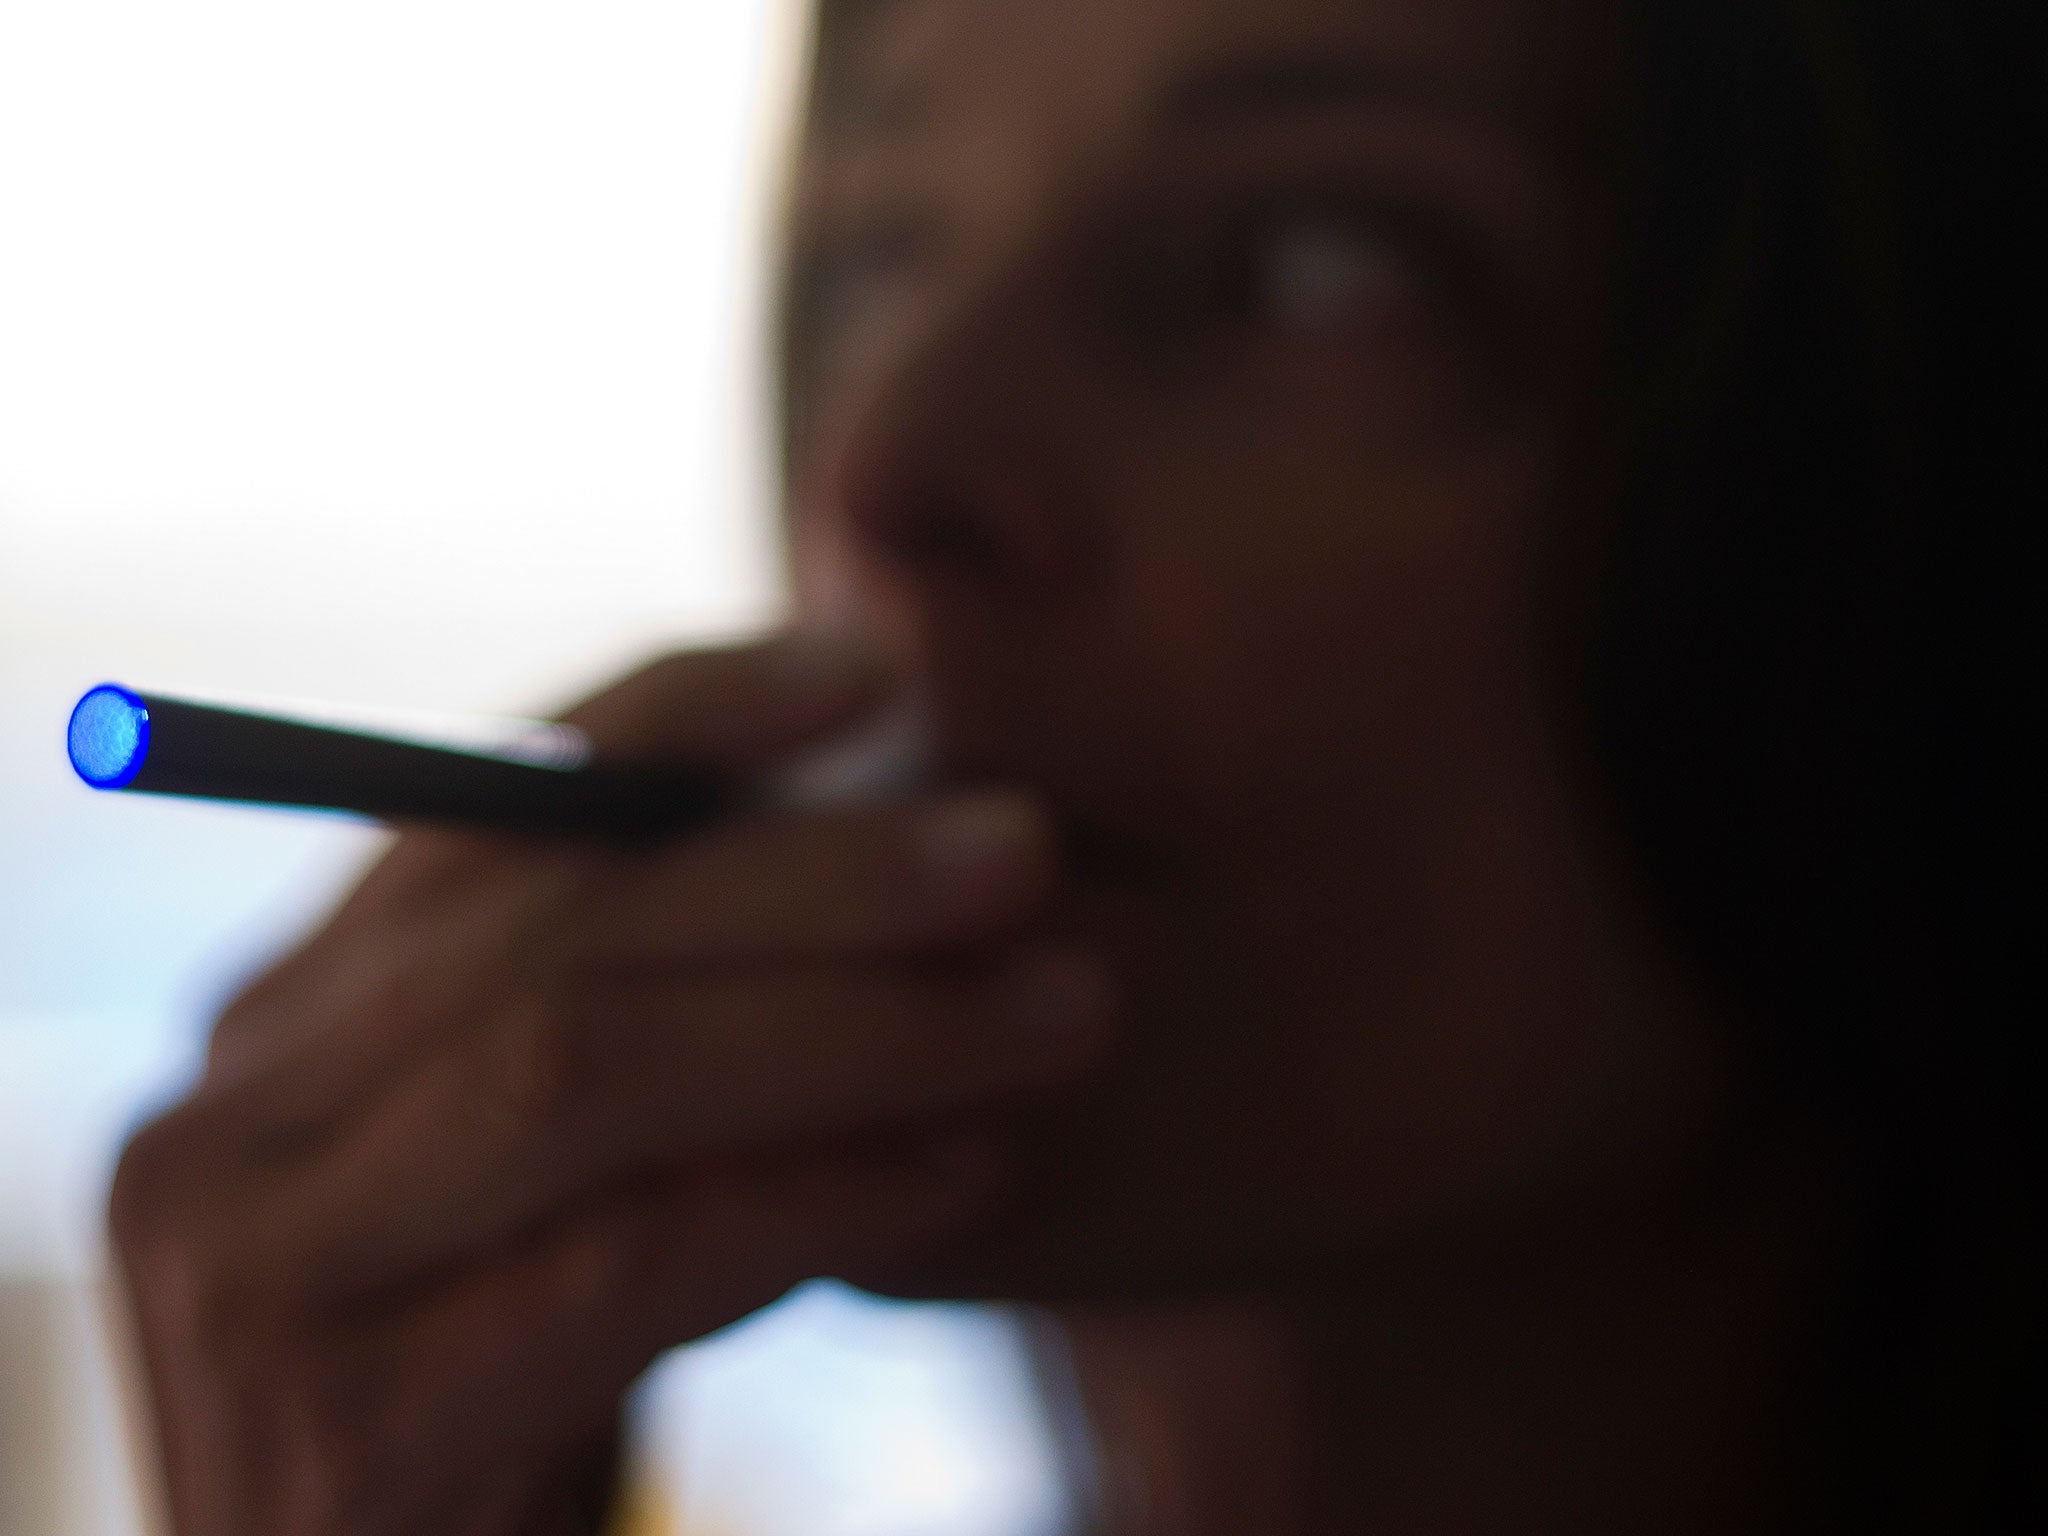 'Smart' e-cigarette can keep track of every puff